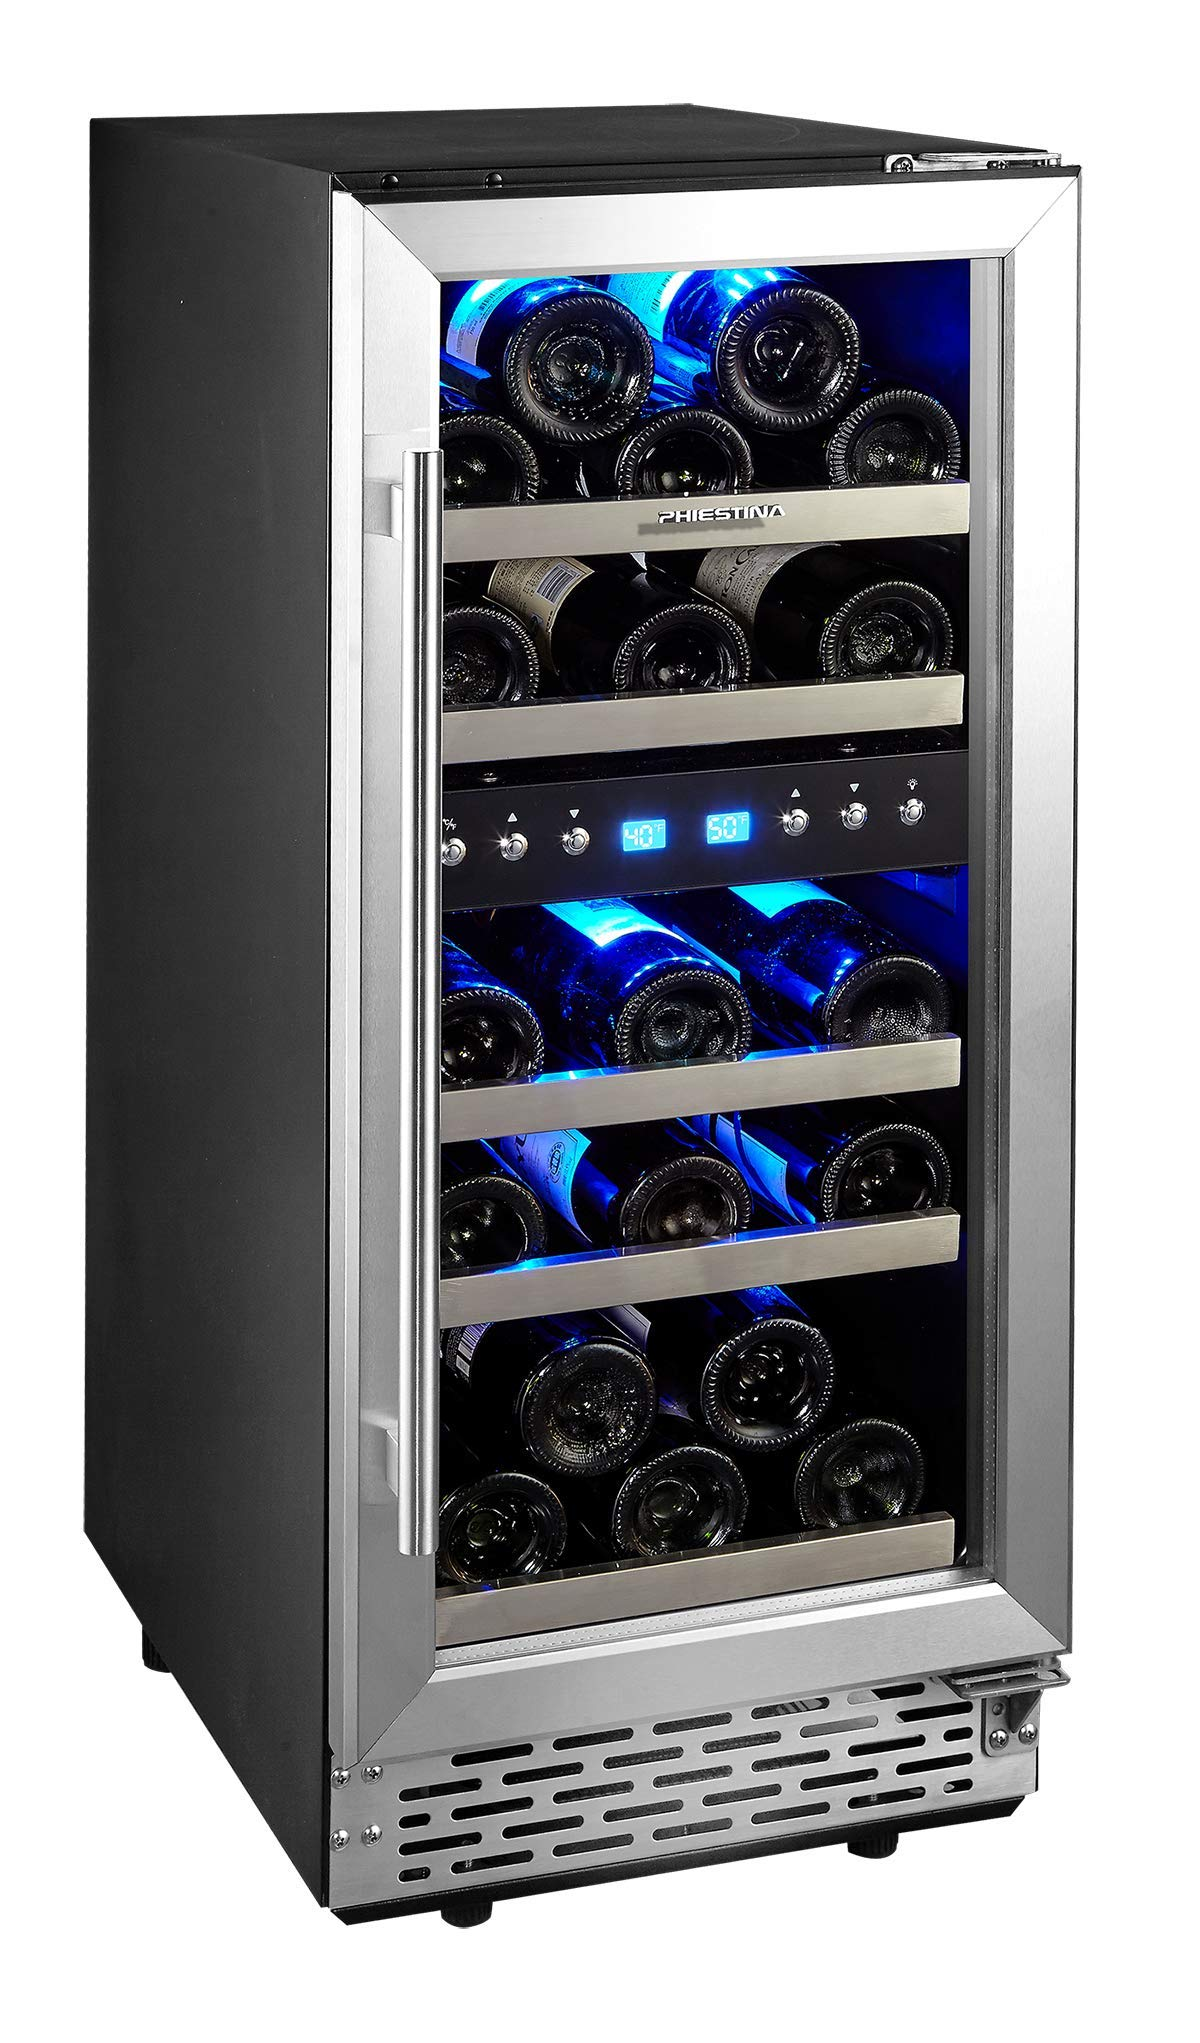 Phiestina 15 Inch Dual Zone Wine Cooler Refrigerator - 29 Bottle Built-in or Free-standing Frost Free Compressor Wine Refrigerator for White and Red Wines with Digital Memory Temperature Control by Phiestina